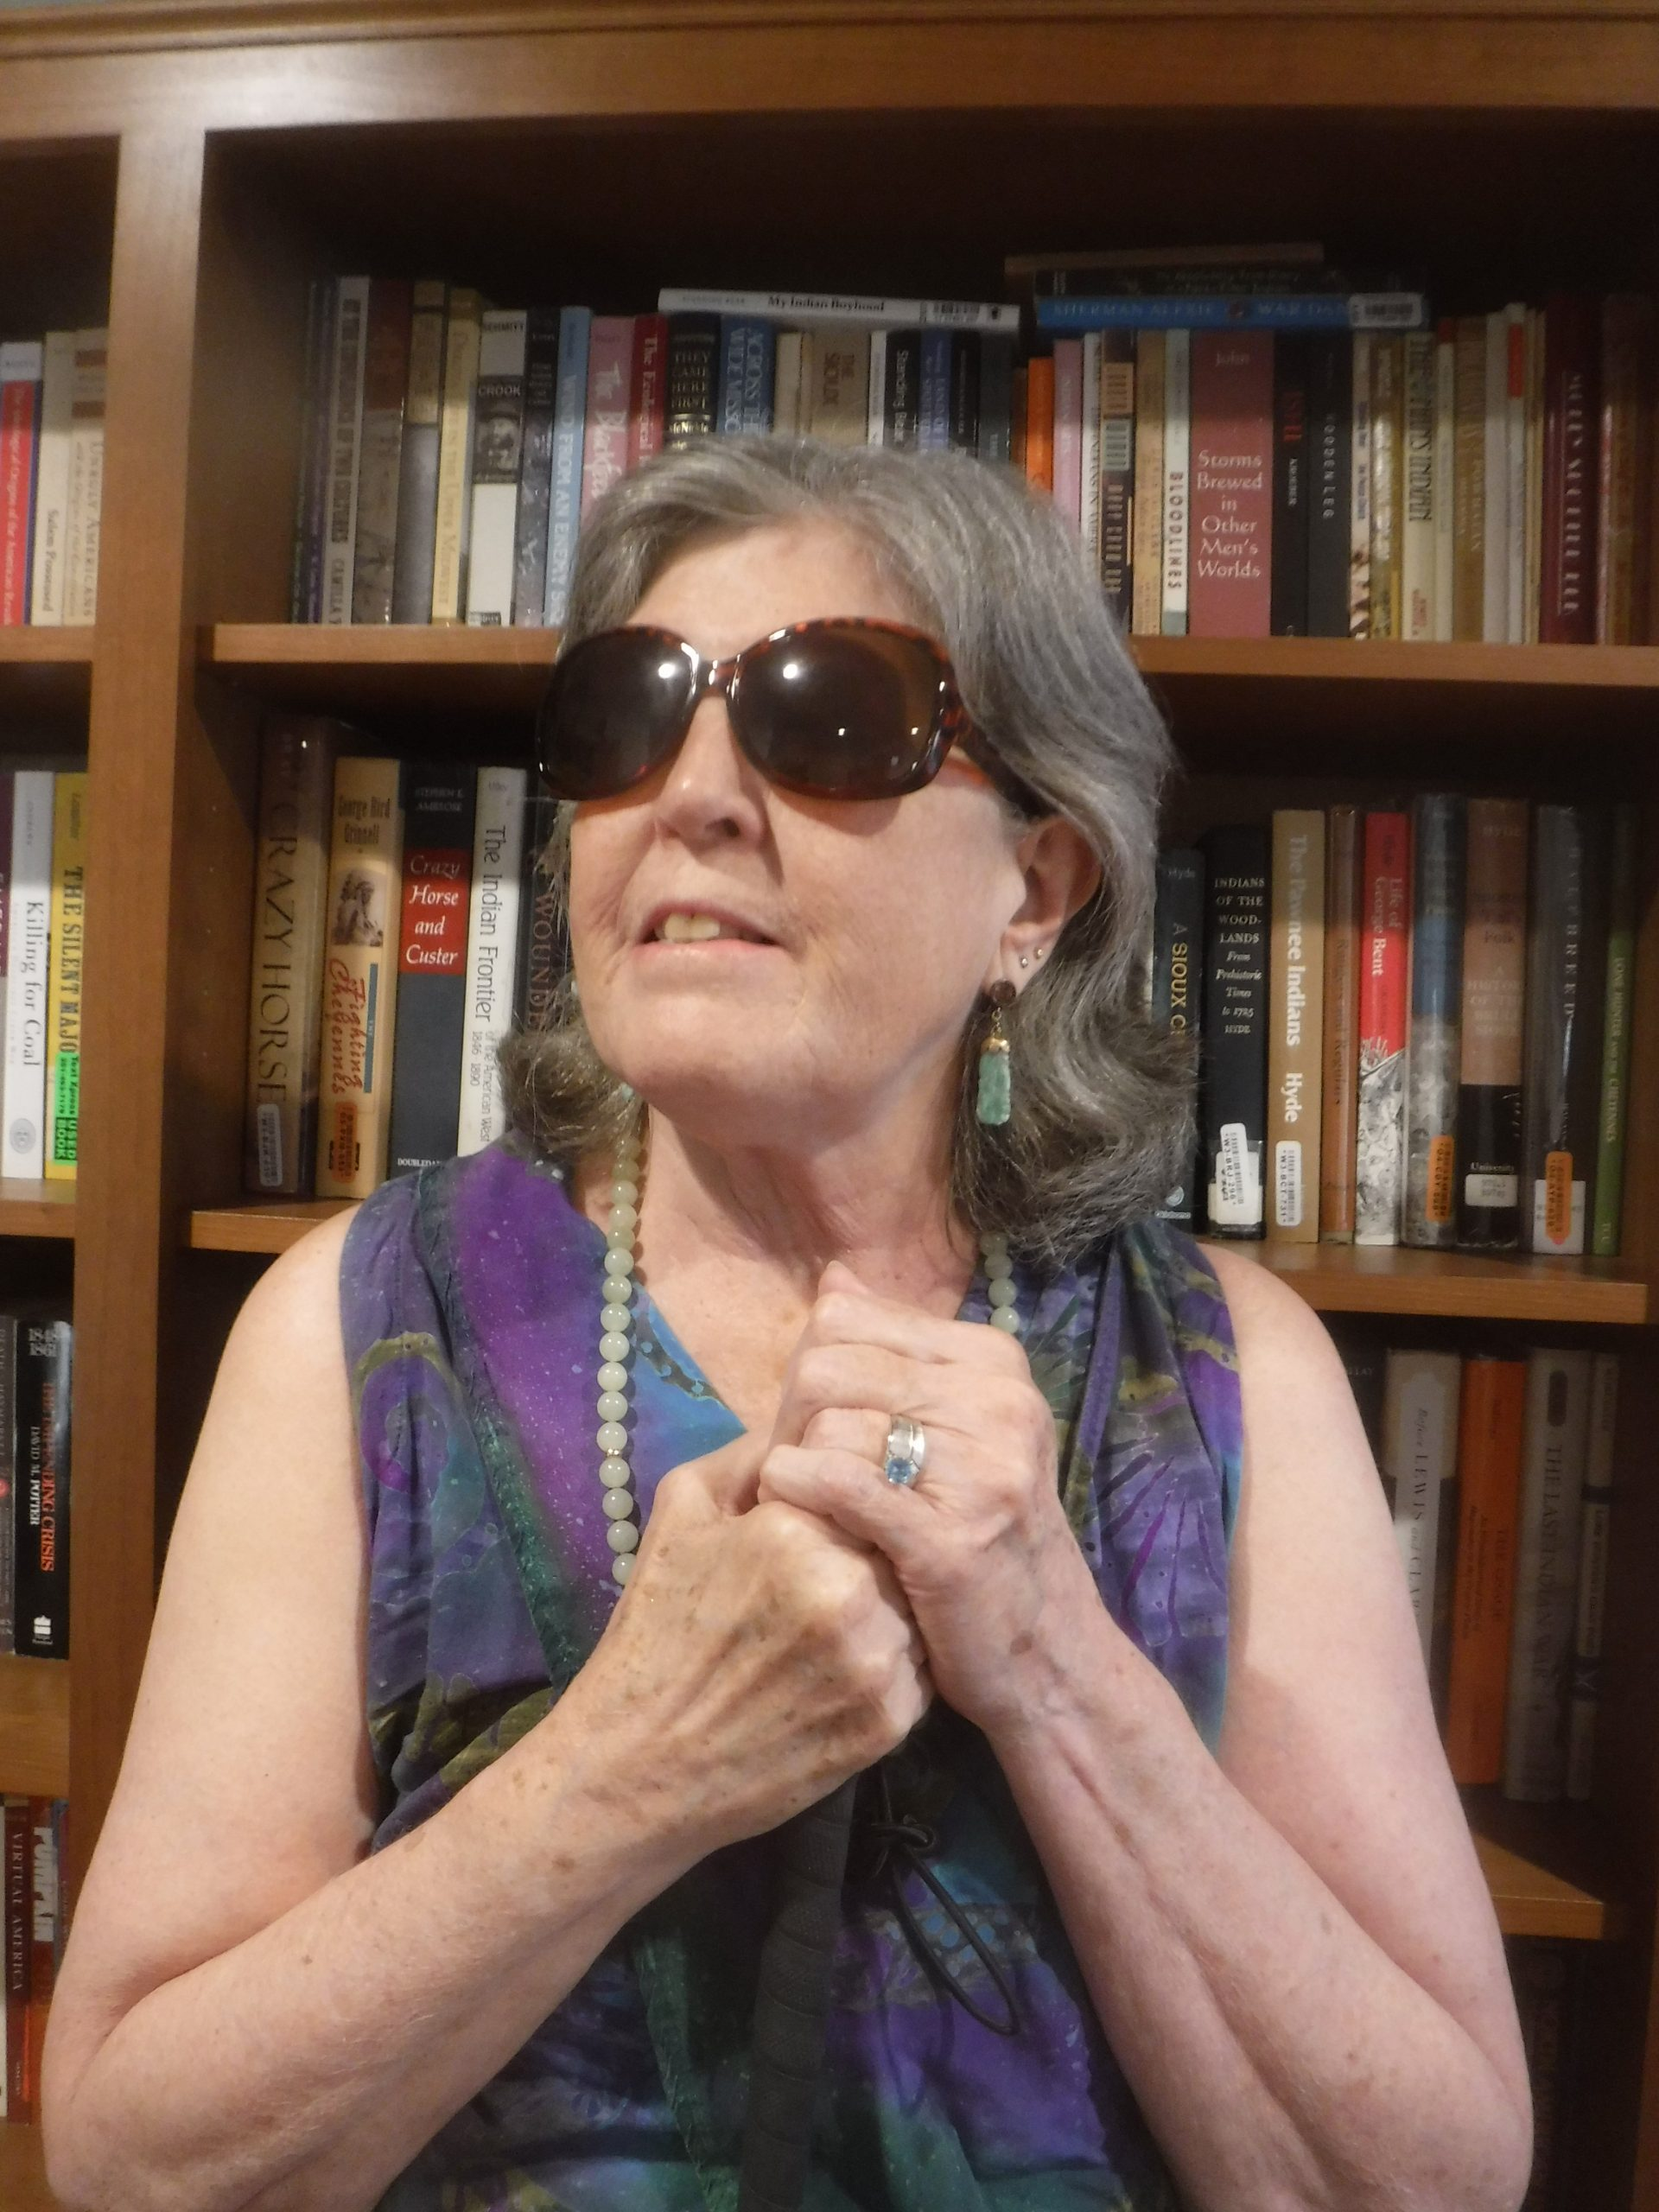 The author, a white woman with short grey hair, stands in front of a bookshelf. She is wearing dark sunglasses and holding on to a cane.